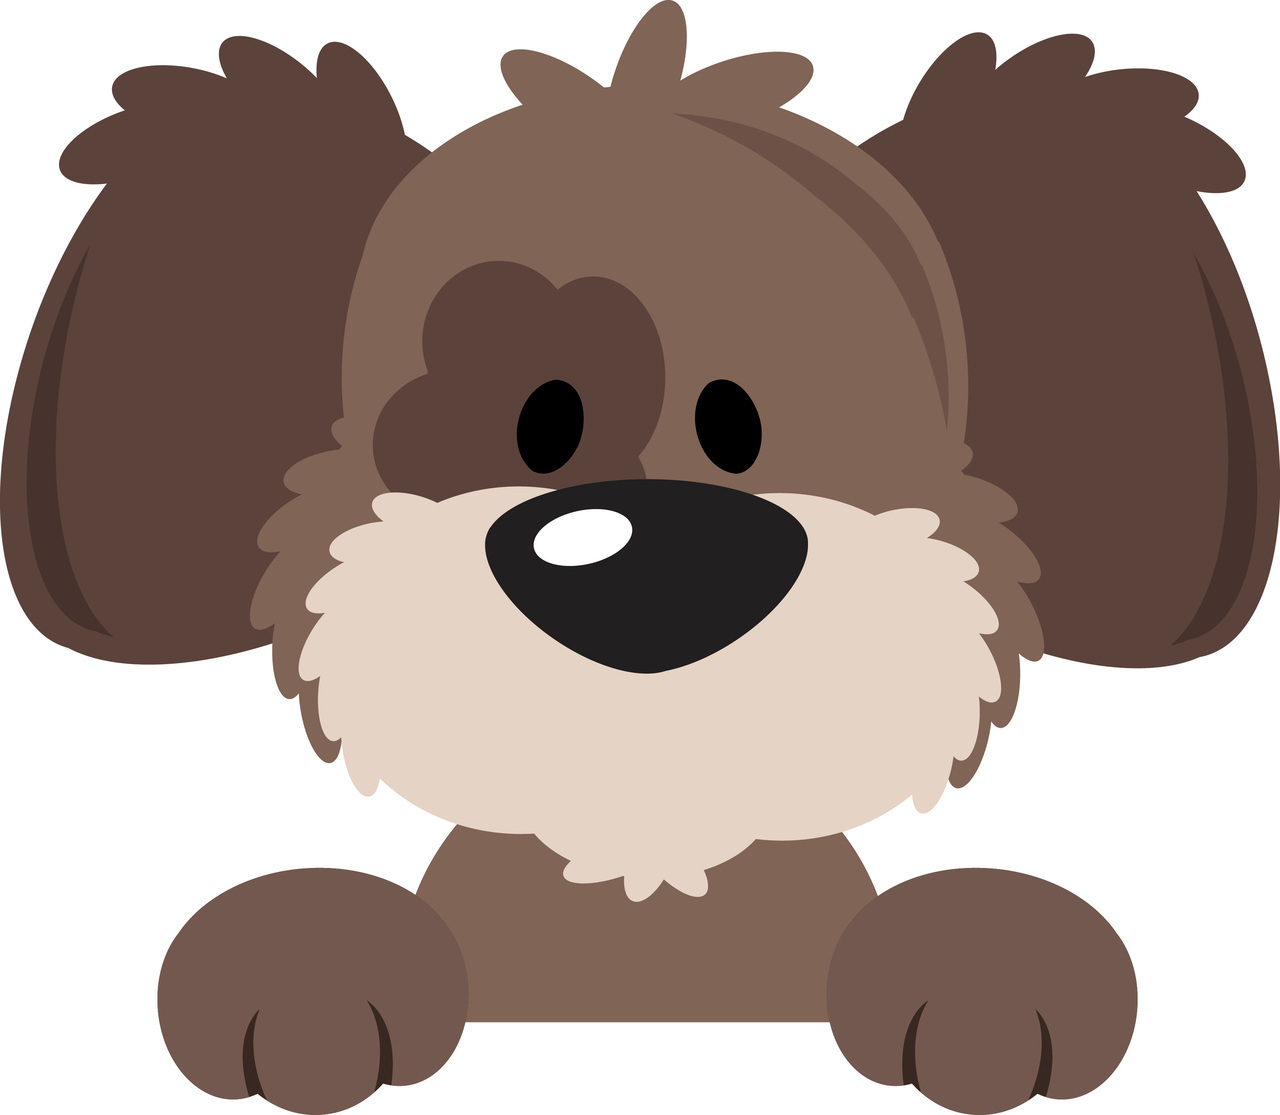 Dog Vector Clipart | Free download best Dog Vector Clipart on ... banner freeuse library